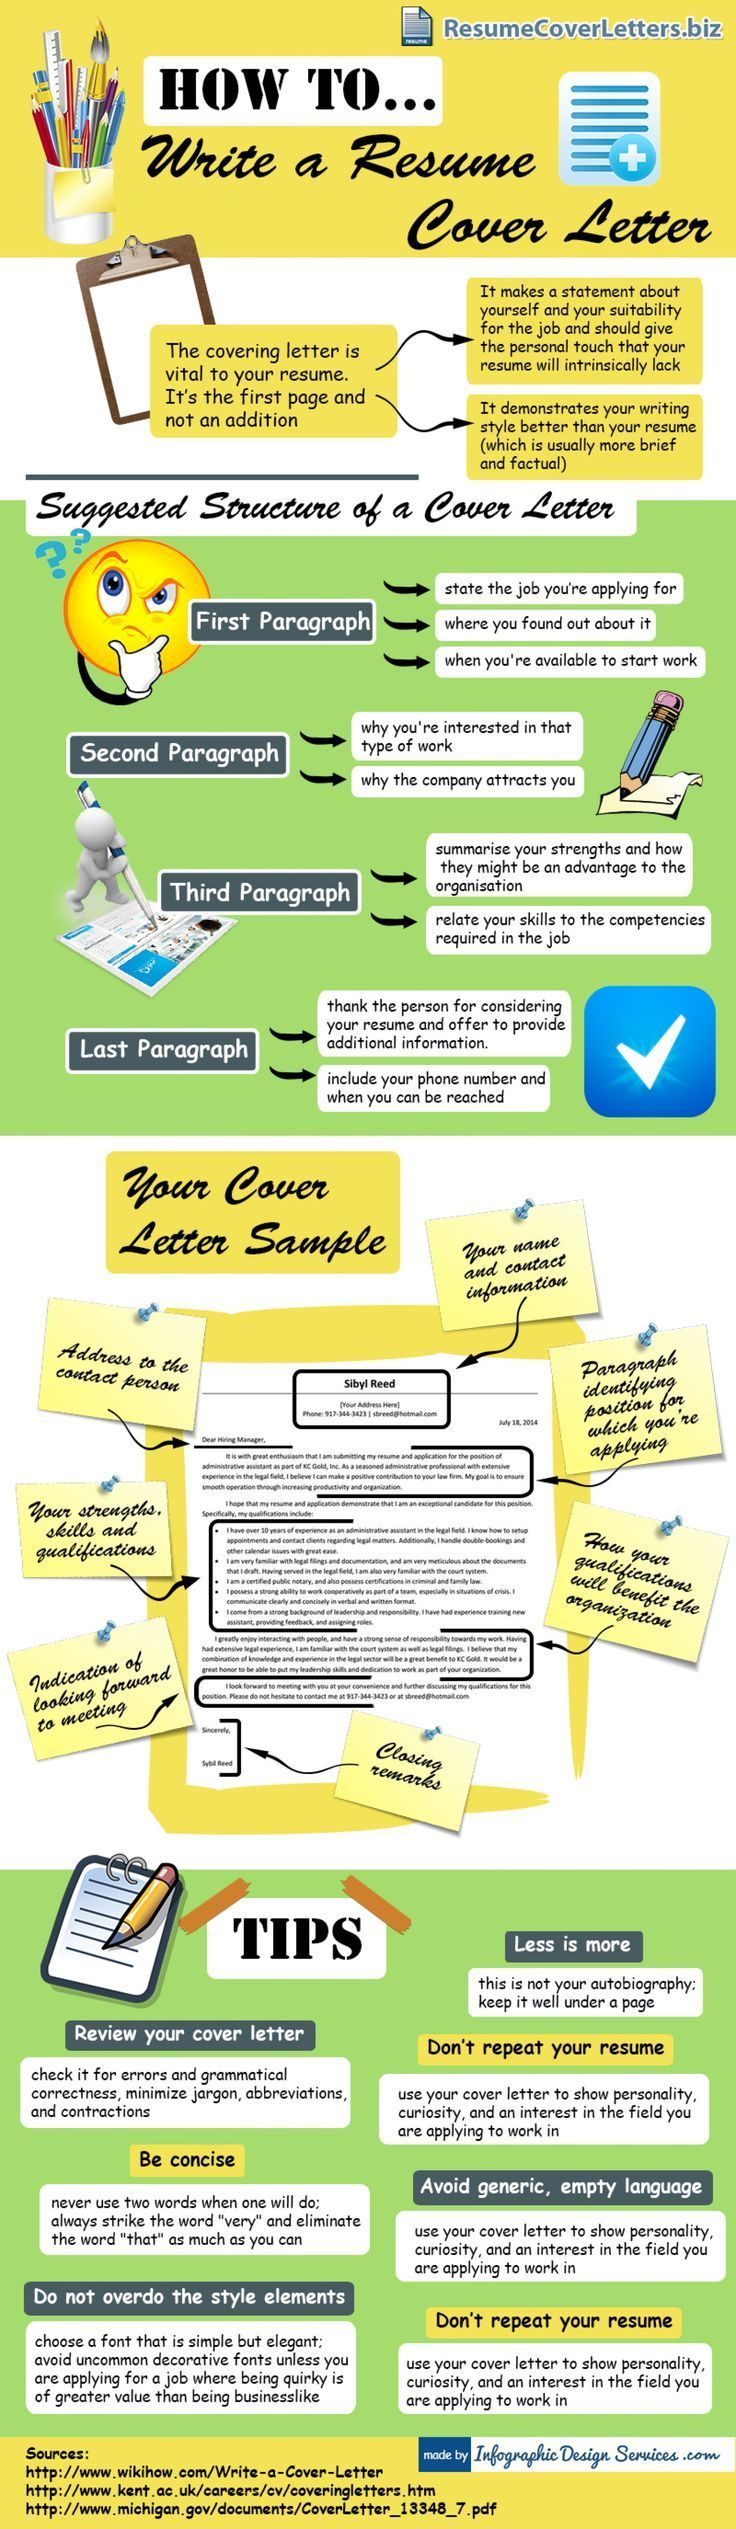 Resume Cover Letter Writing Tips Infographic  Resume Tips